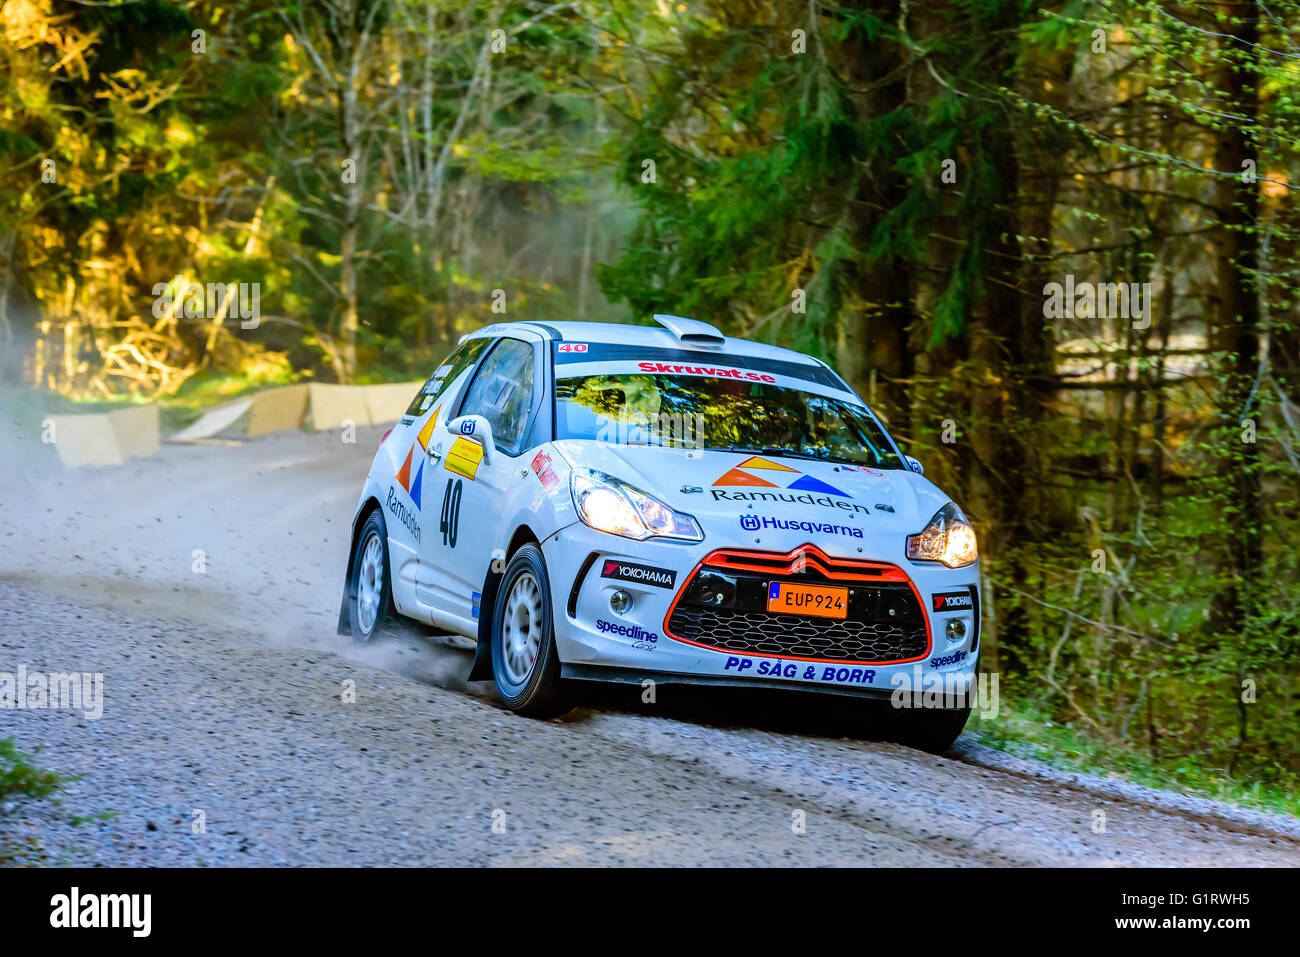 Karlskrona, Sweden - May 6, 2016: 41st South Swedish Rally in the woods outside town on gravel road on special stage - Stock Image